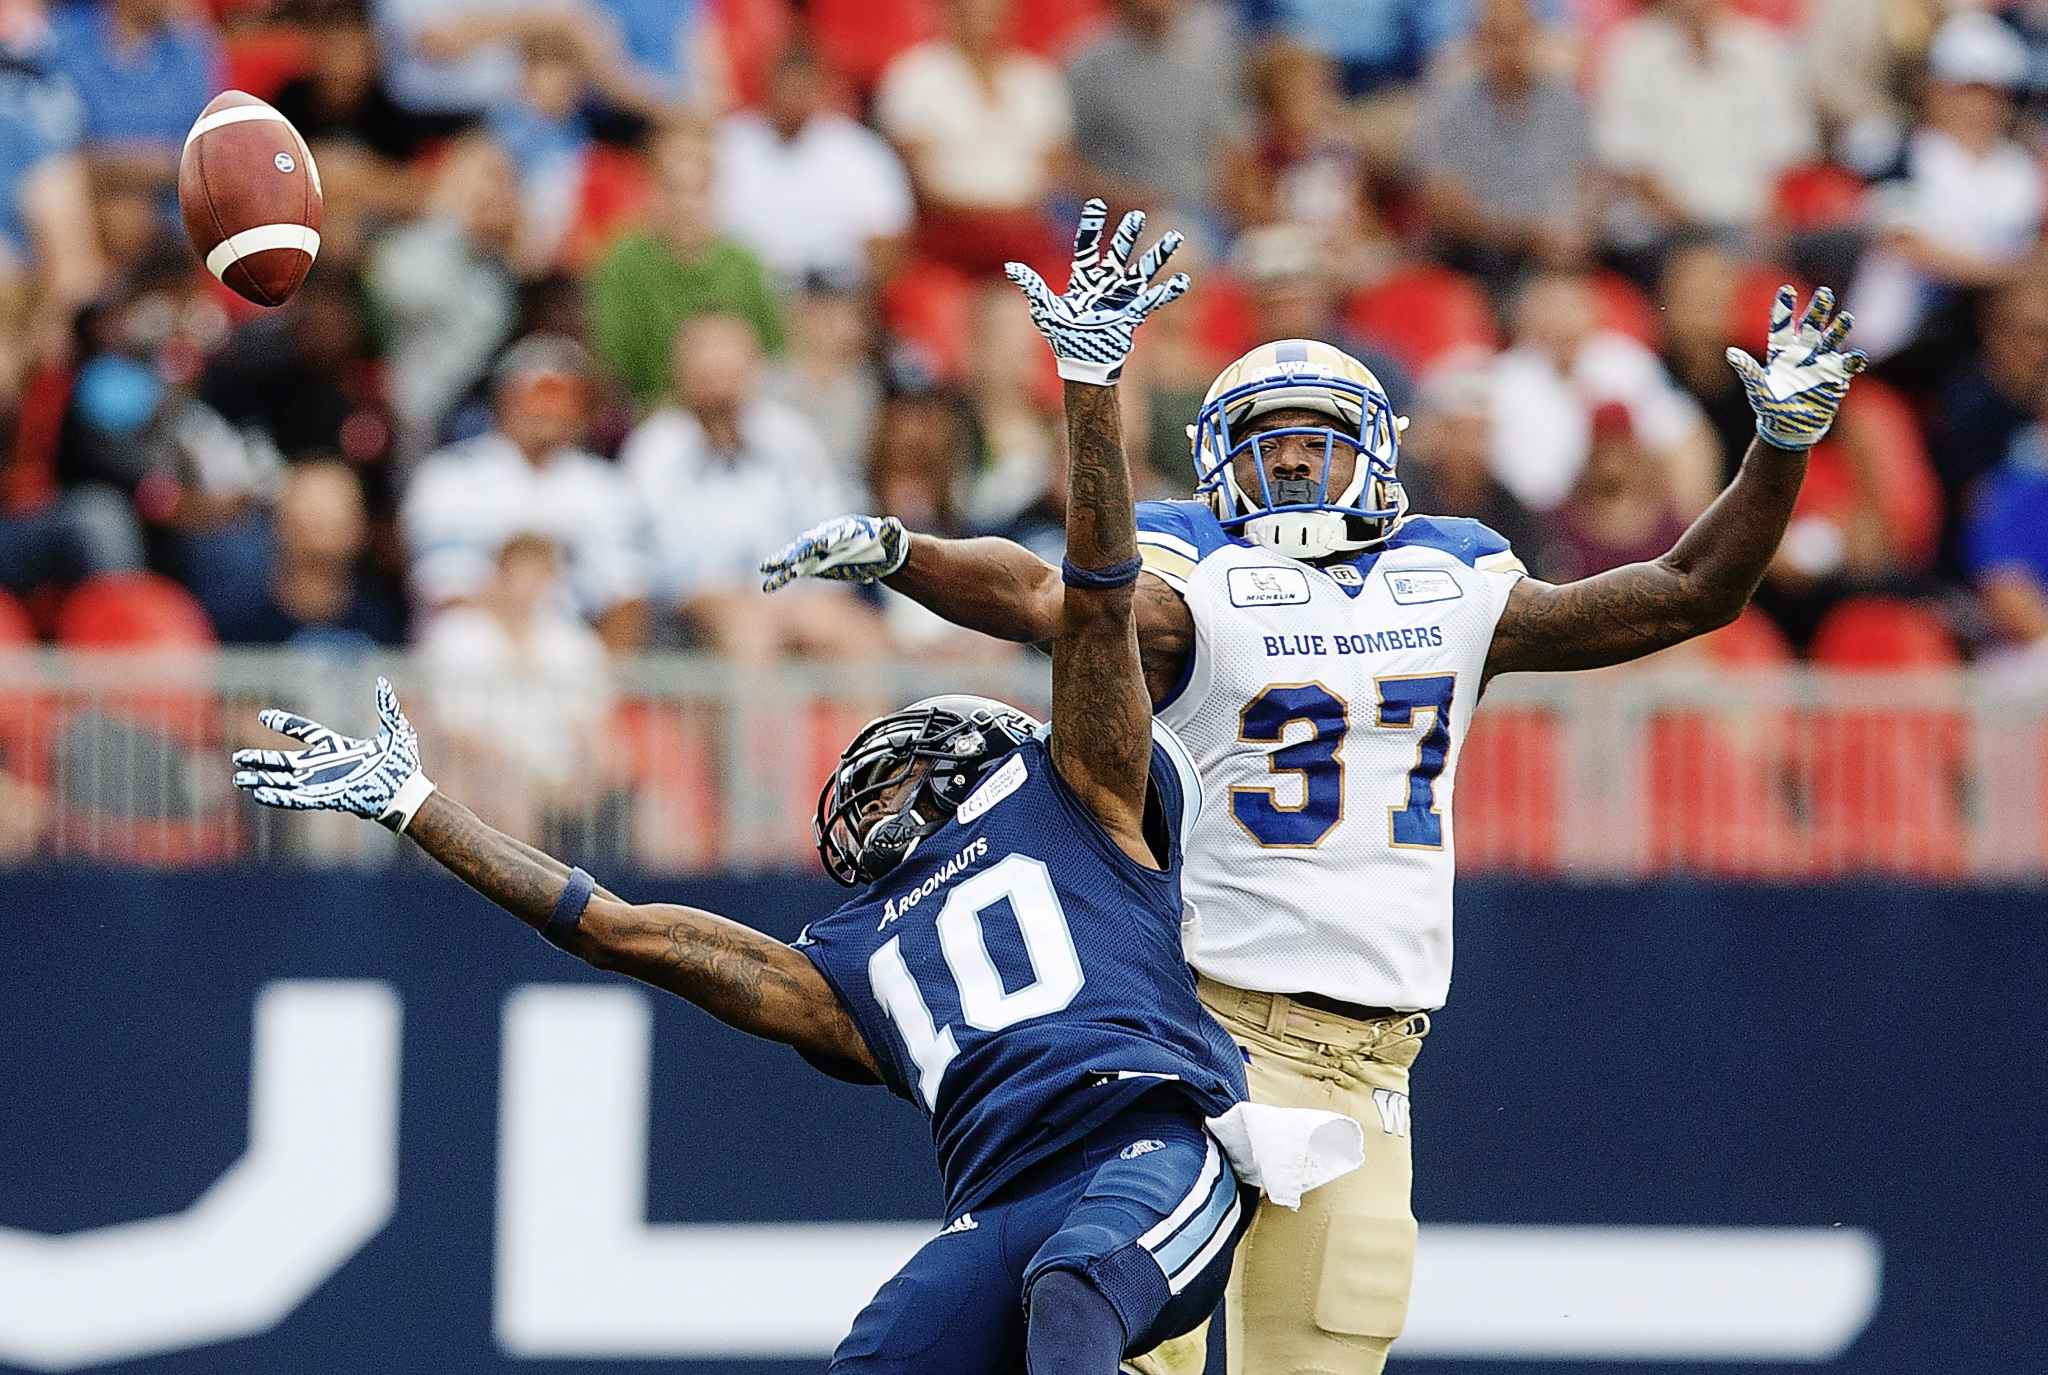 The Winnipeg Blue Bombers are trying to re-sign Brandon Alexander, right, to stabilize their secondary.